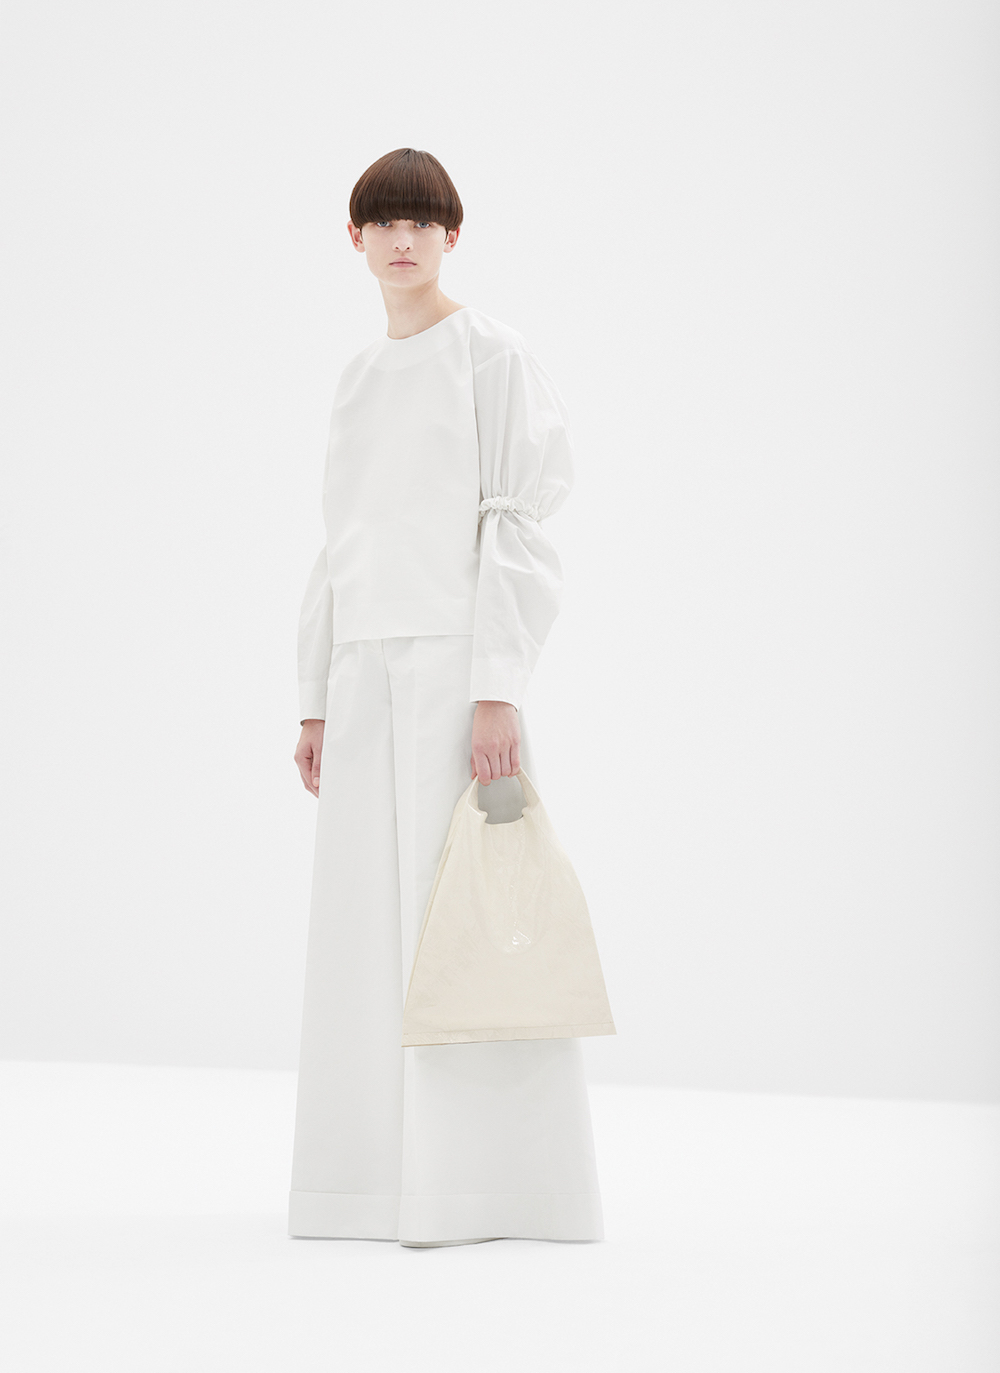 COS-SS18-6